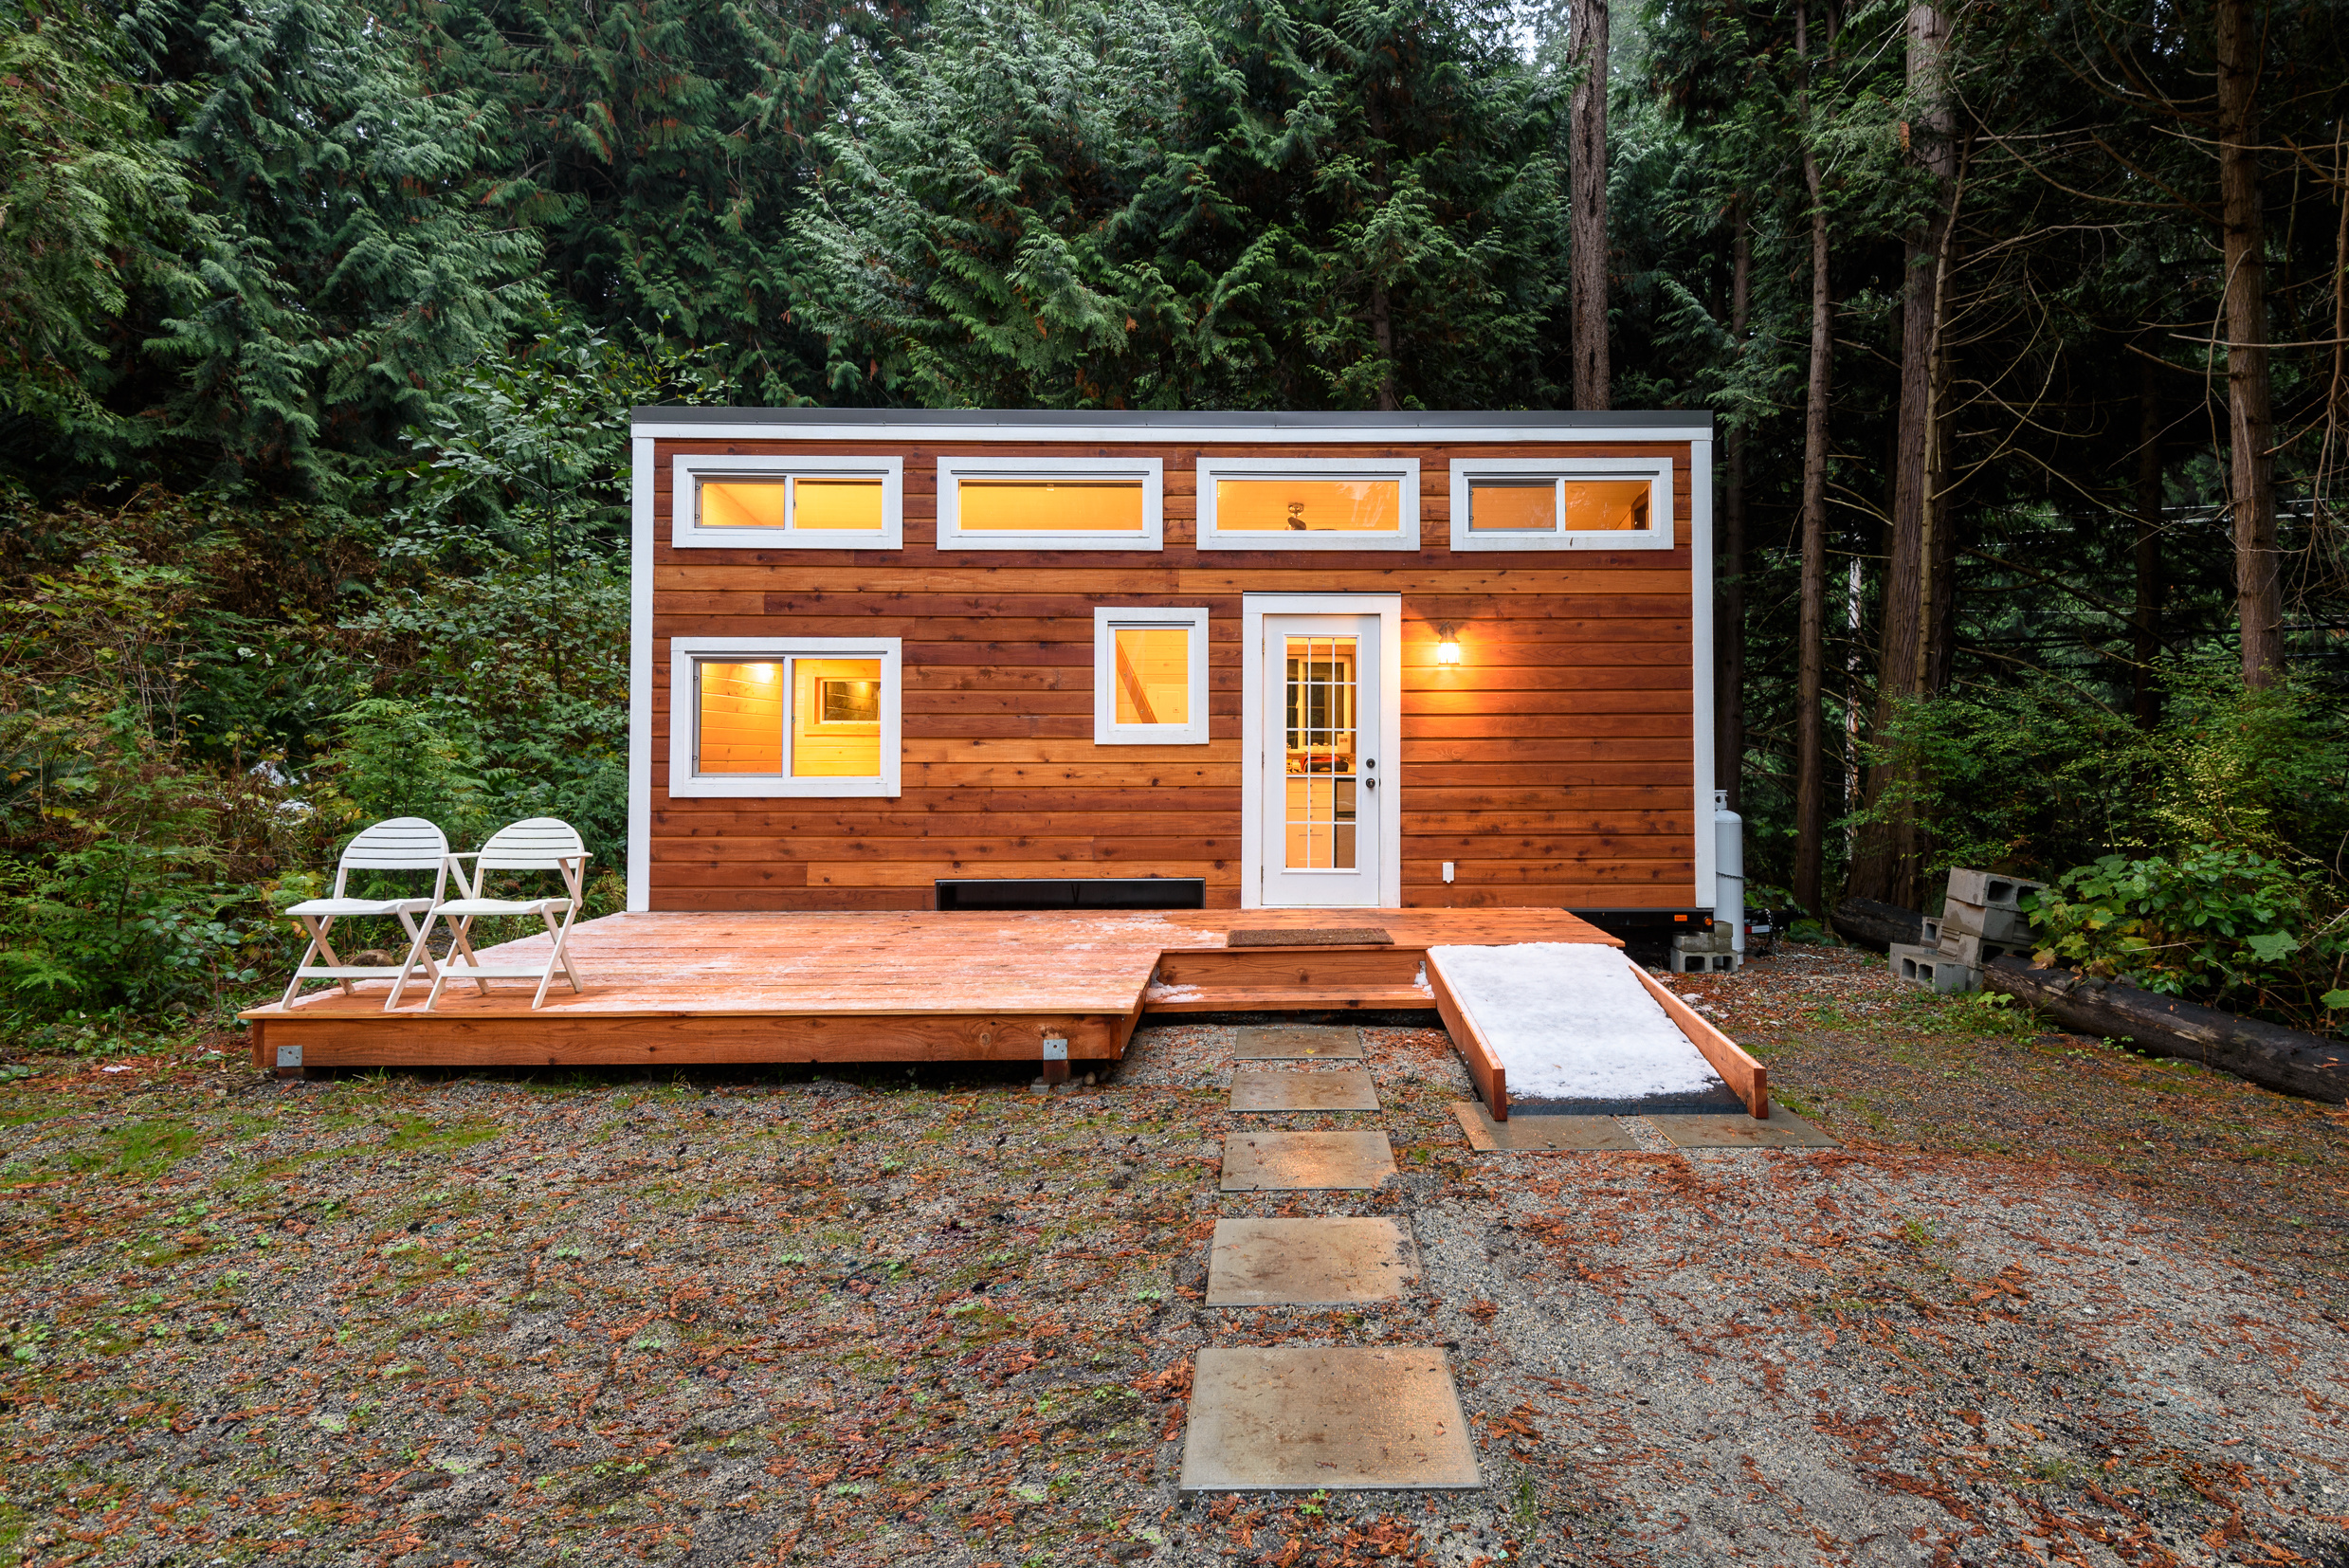 Tiny House, Large Living: The Tiny House Movement